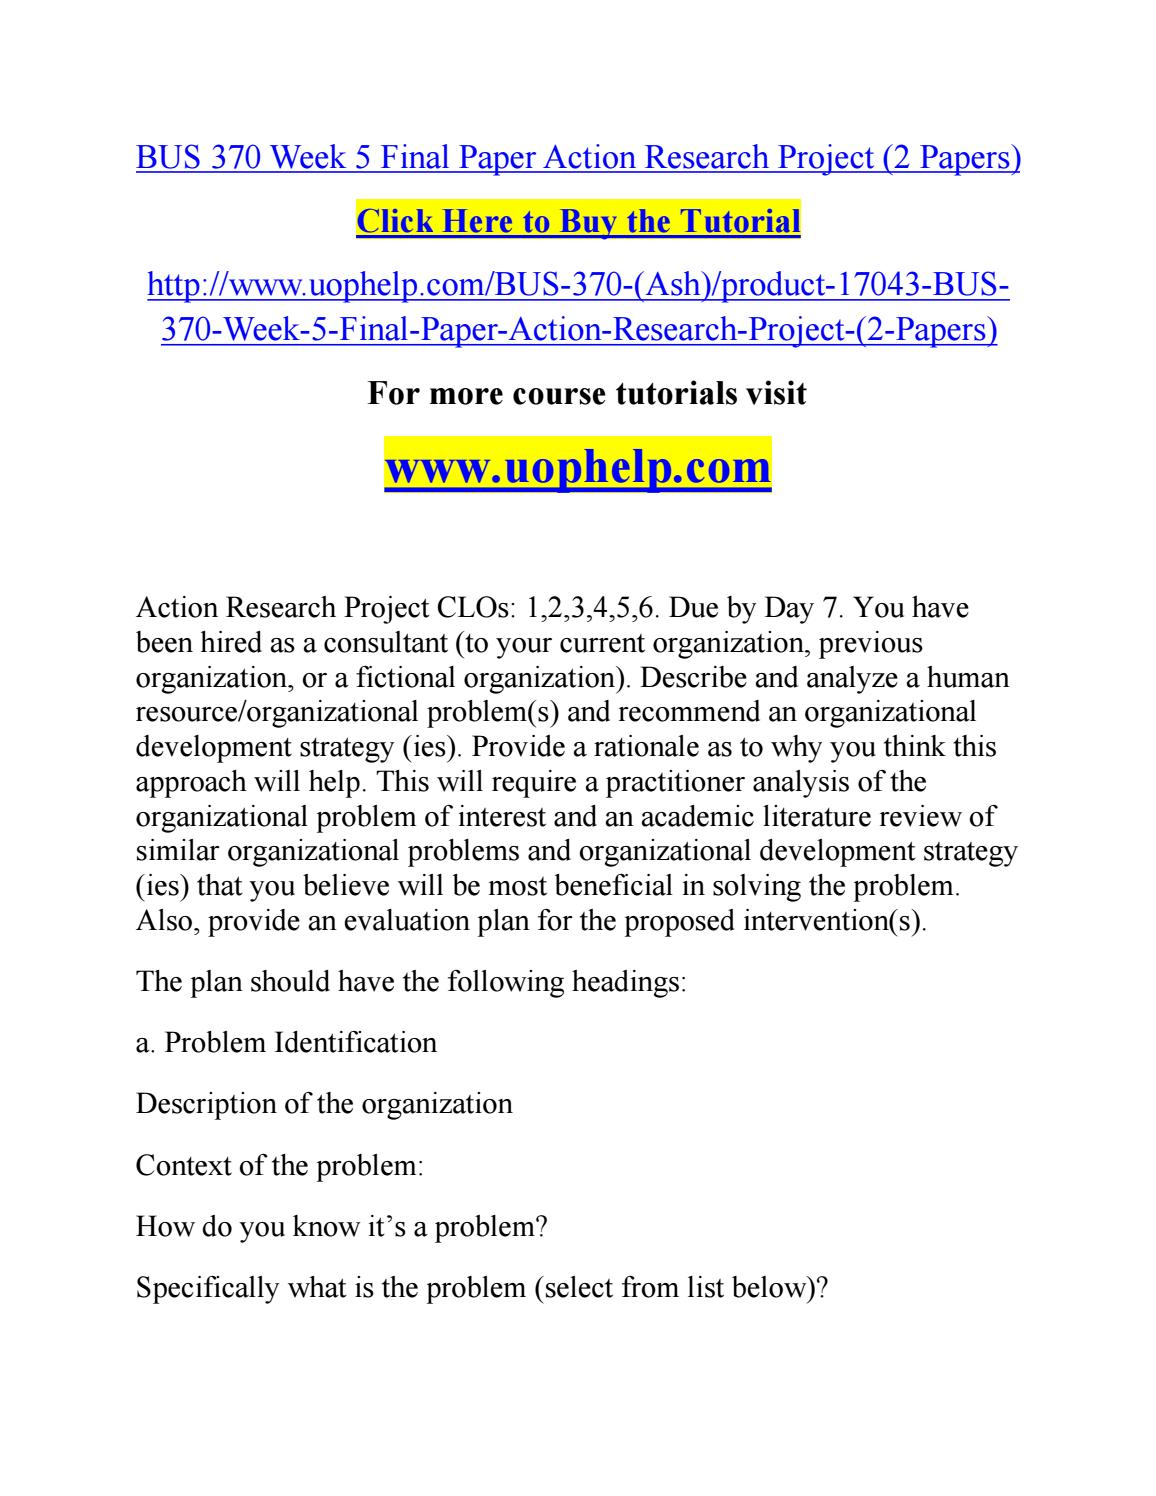 action research project papers